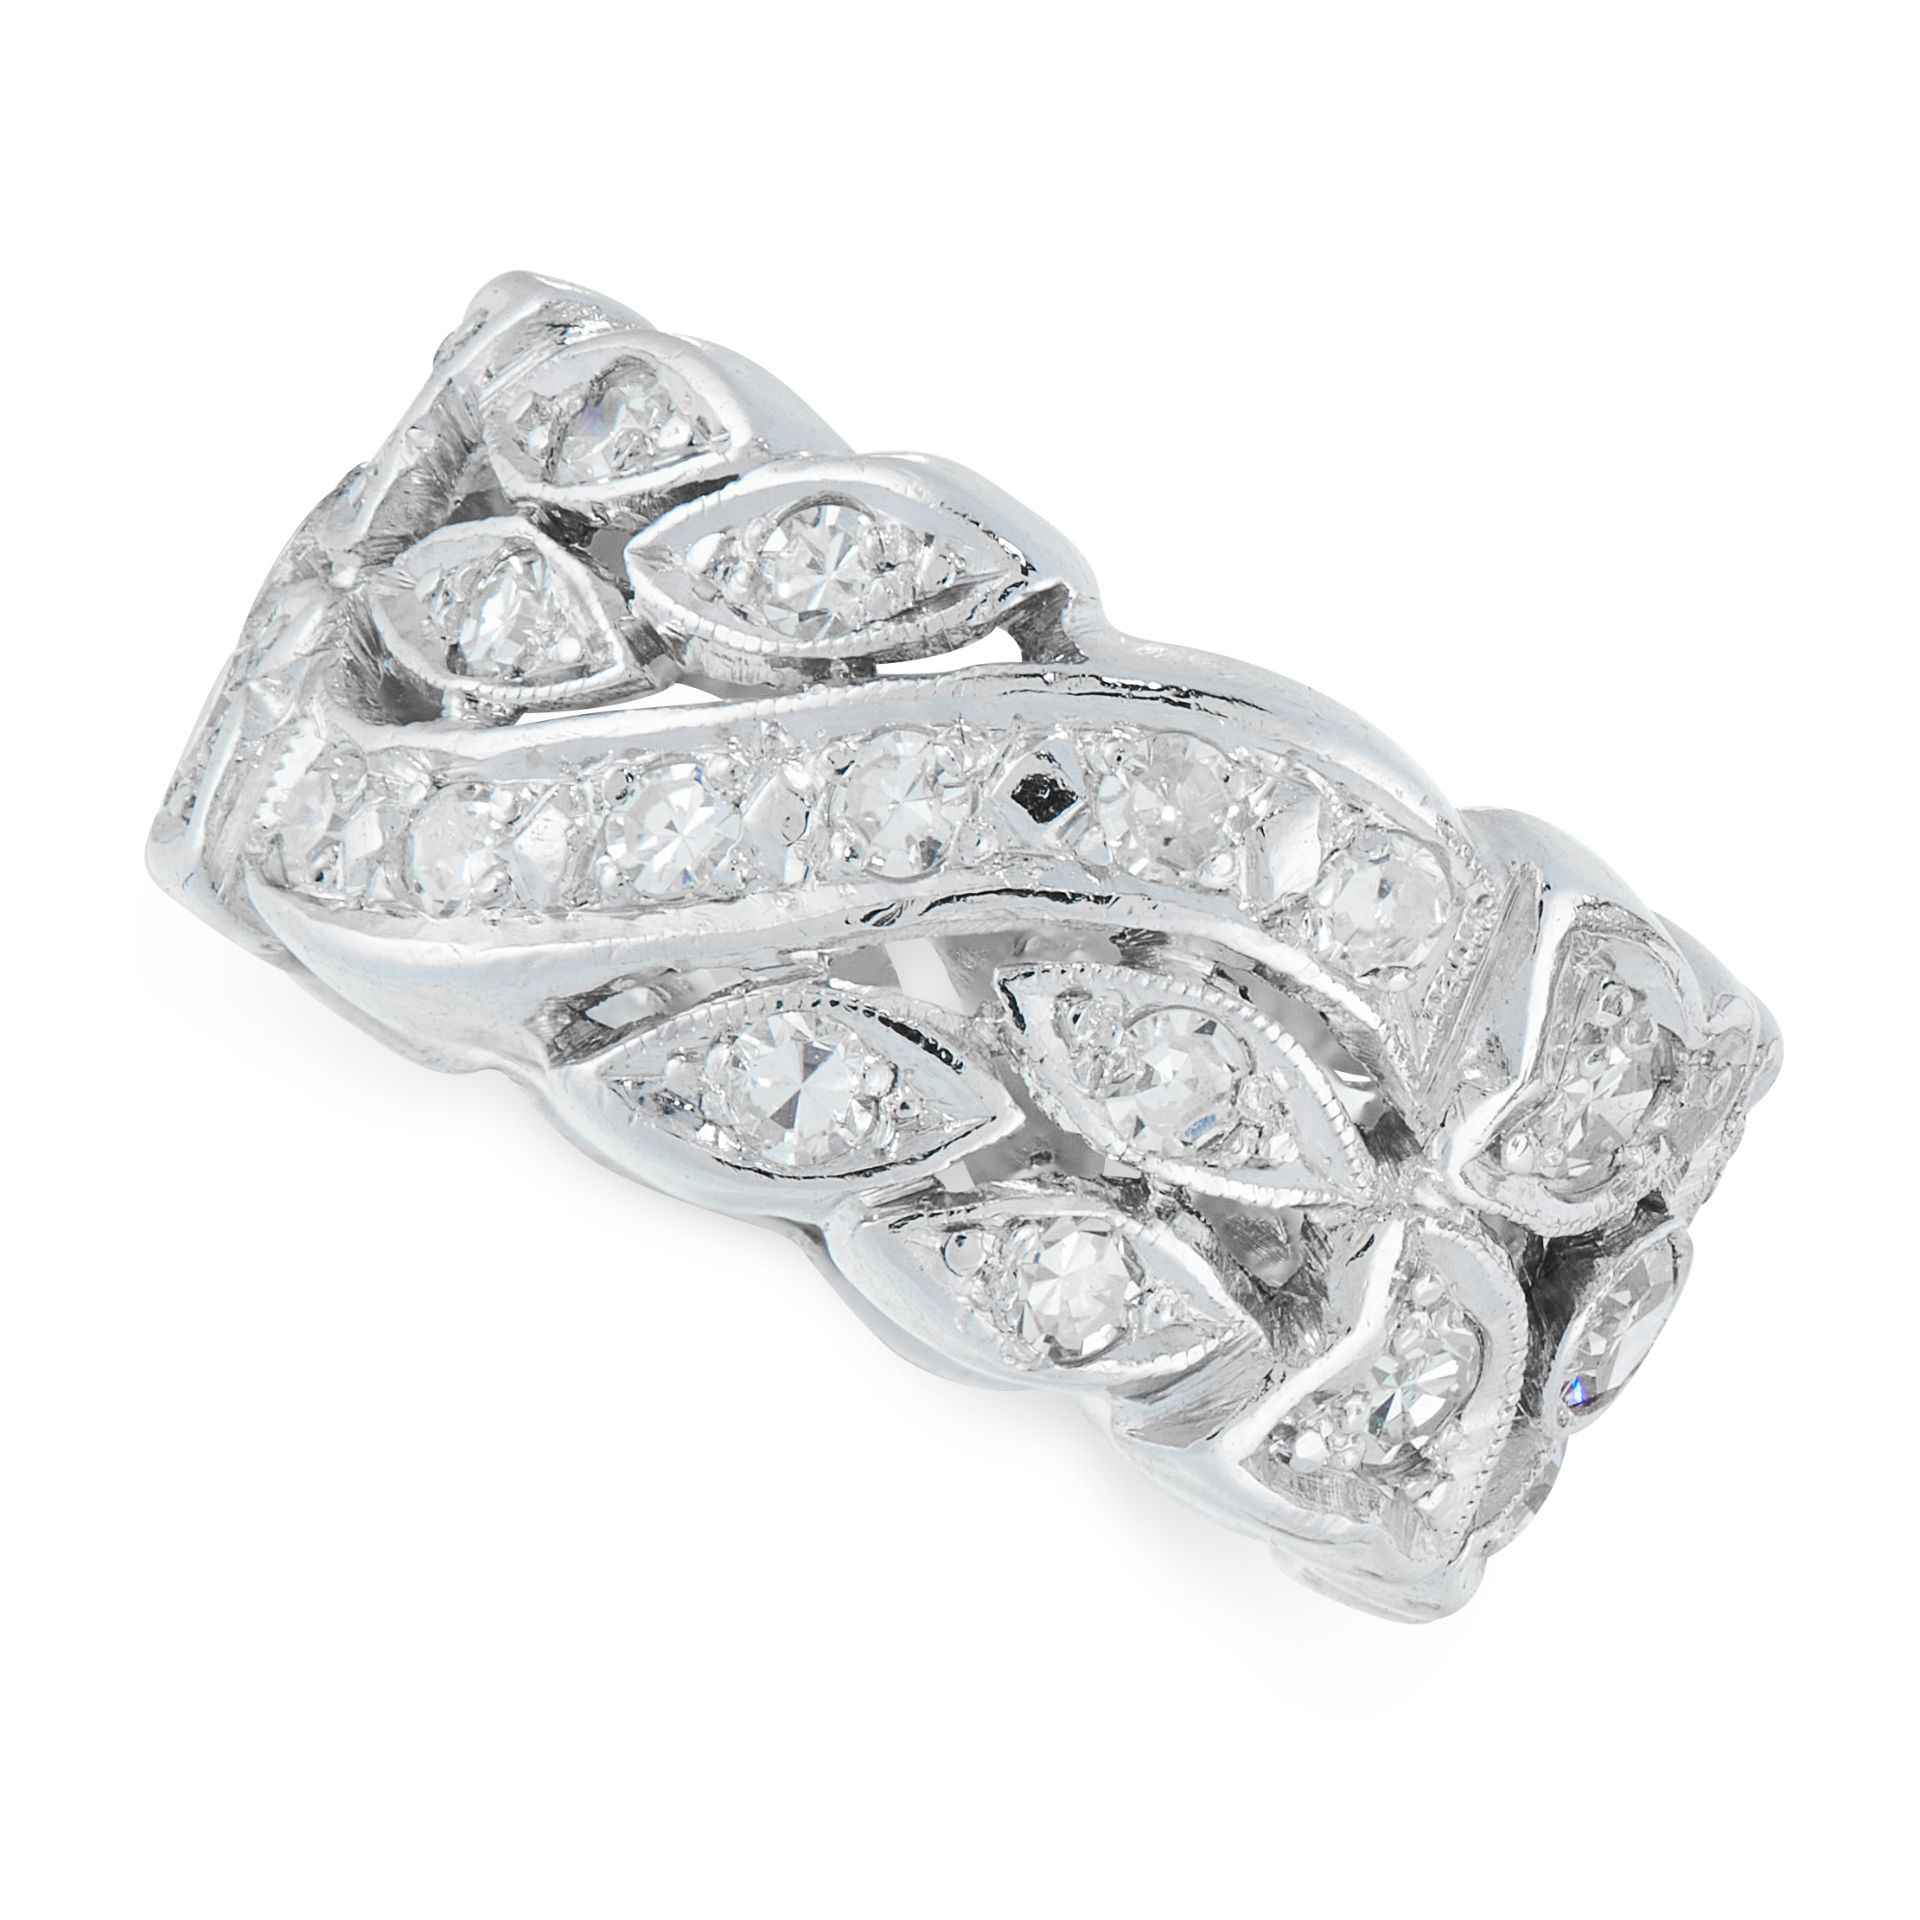 A DIAMOND BAND RING in open framework, set with round cut diamonds, unmarked, size K / 5.25, 6.90g.